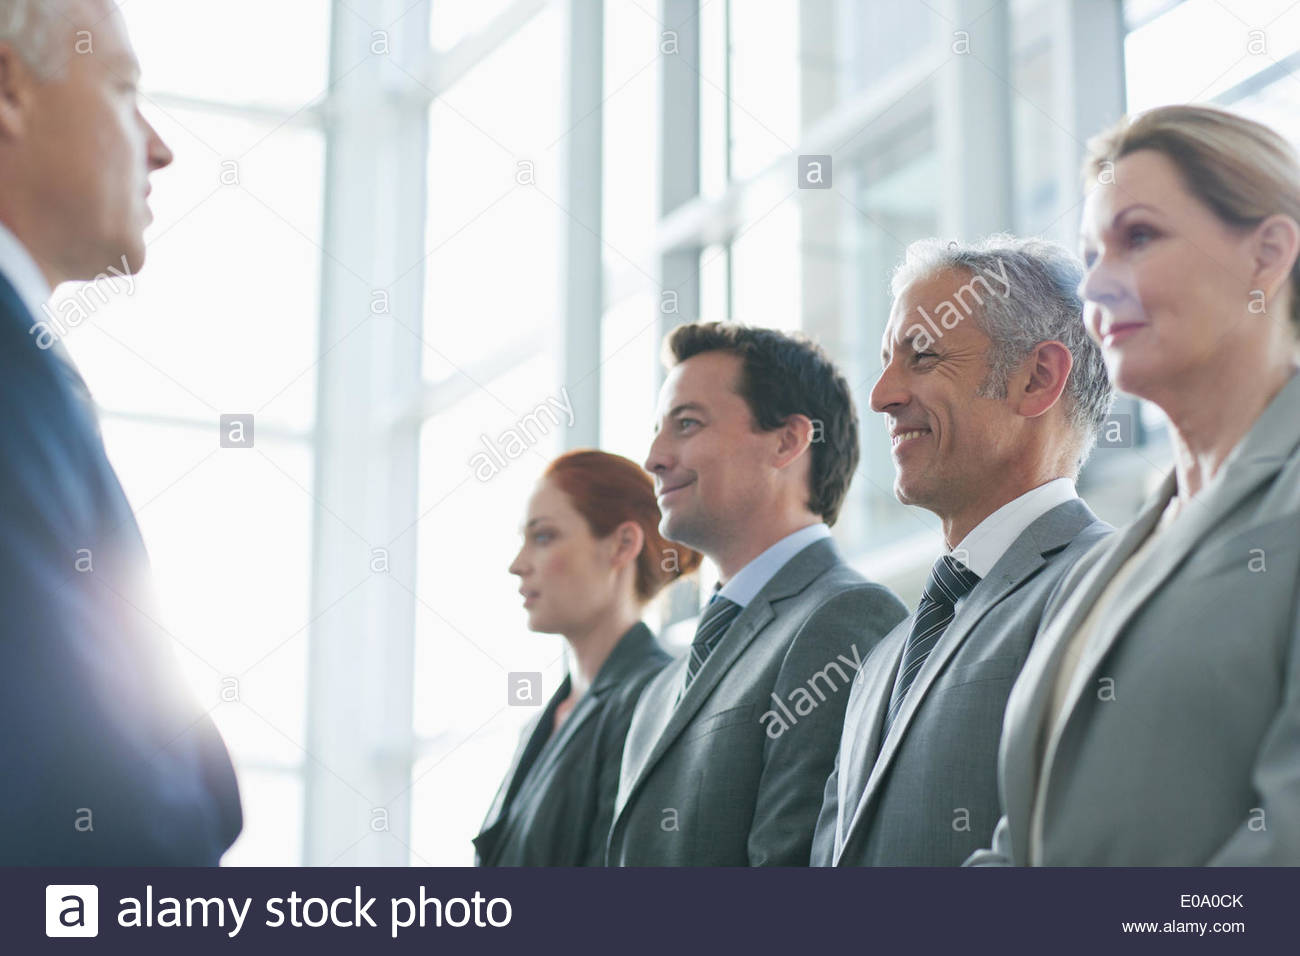 Group of business people - Stock Image